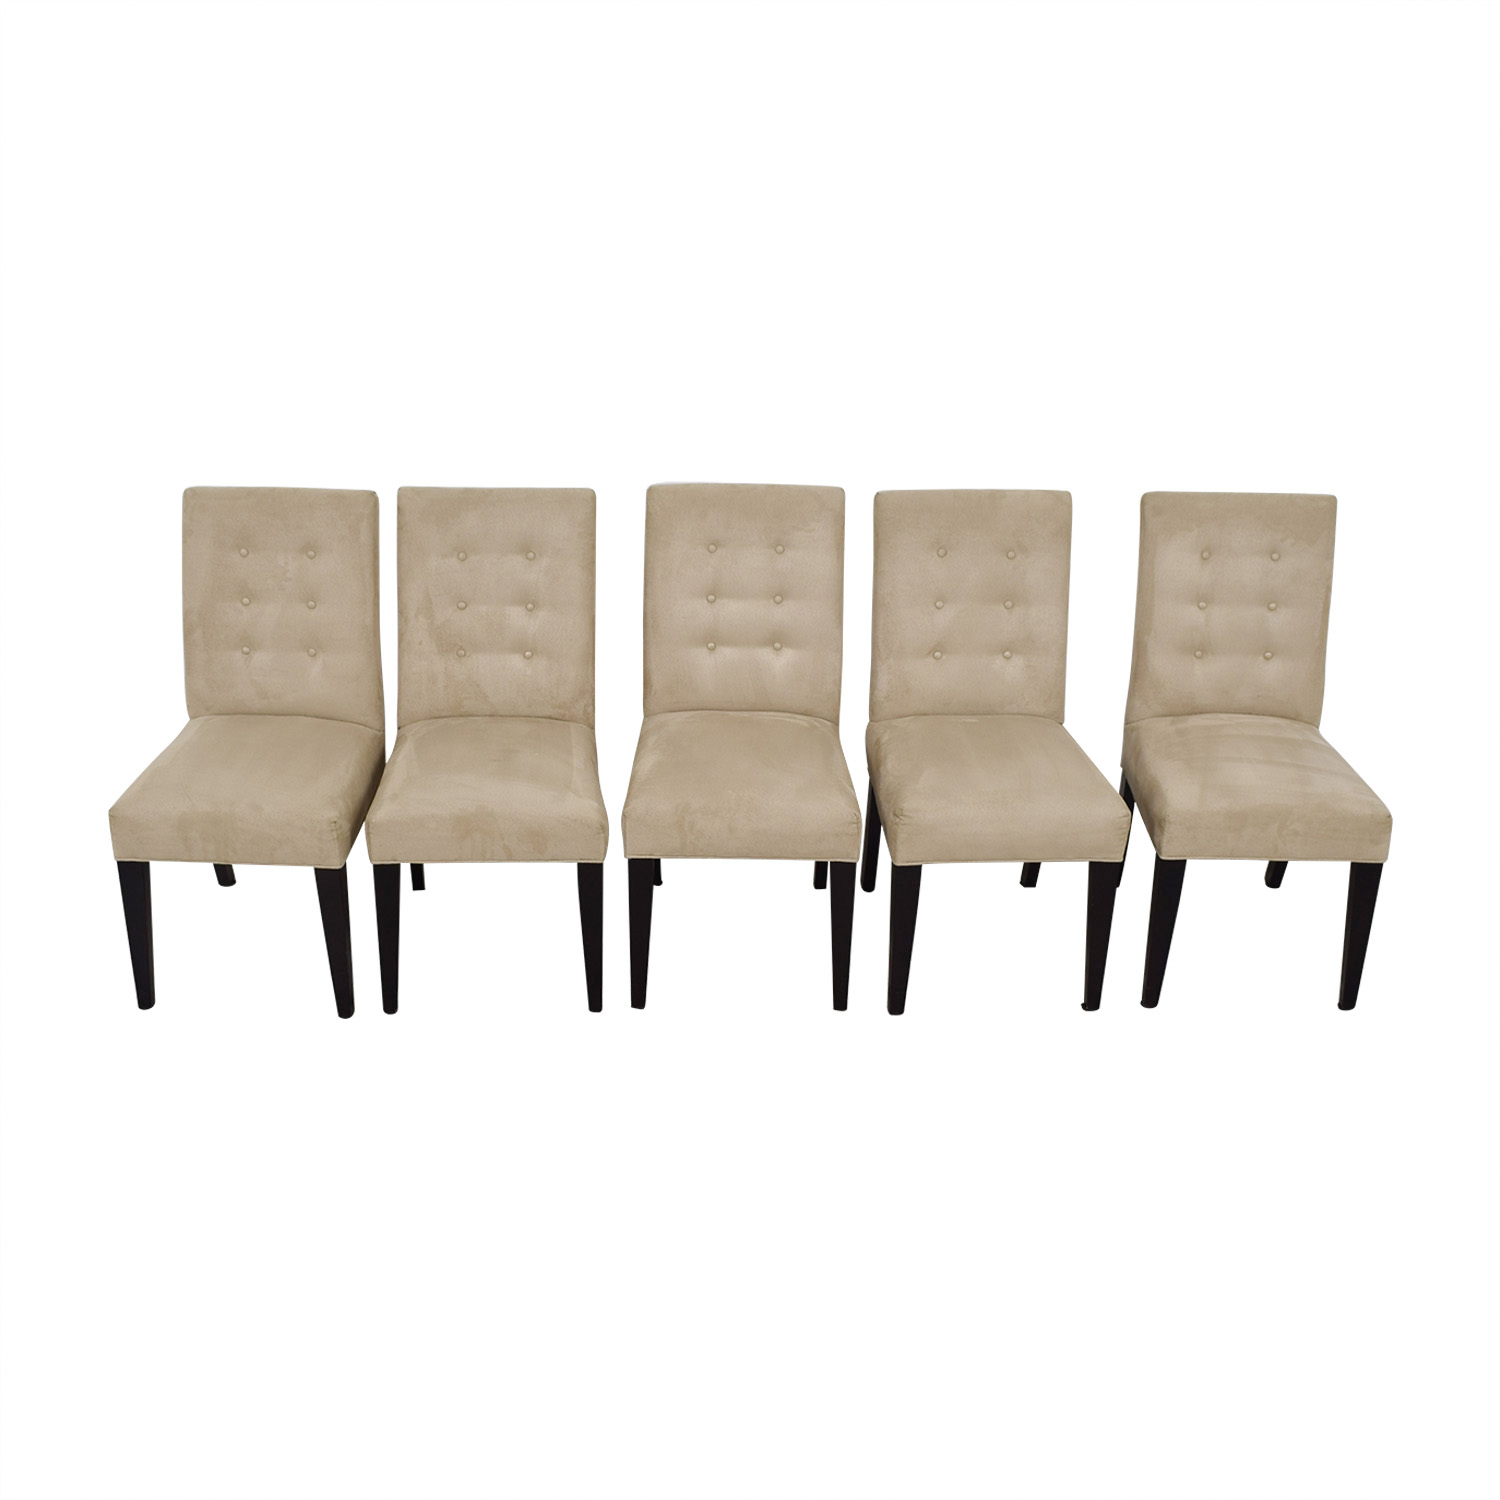 Mitchell Gold + Bob Williams Mitchell Gold + Bob Williams Grey Tufted Chairs nj